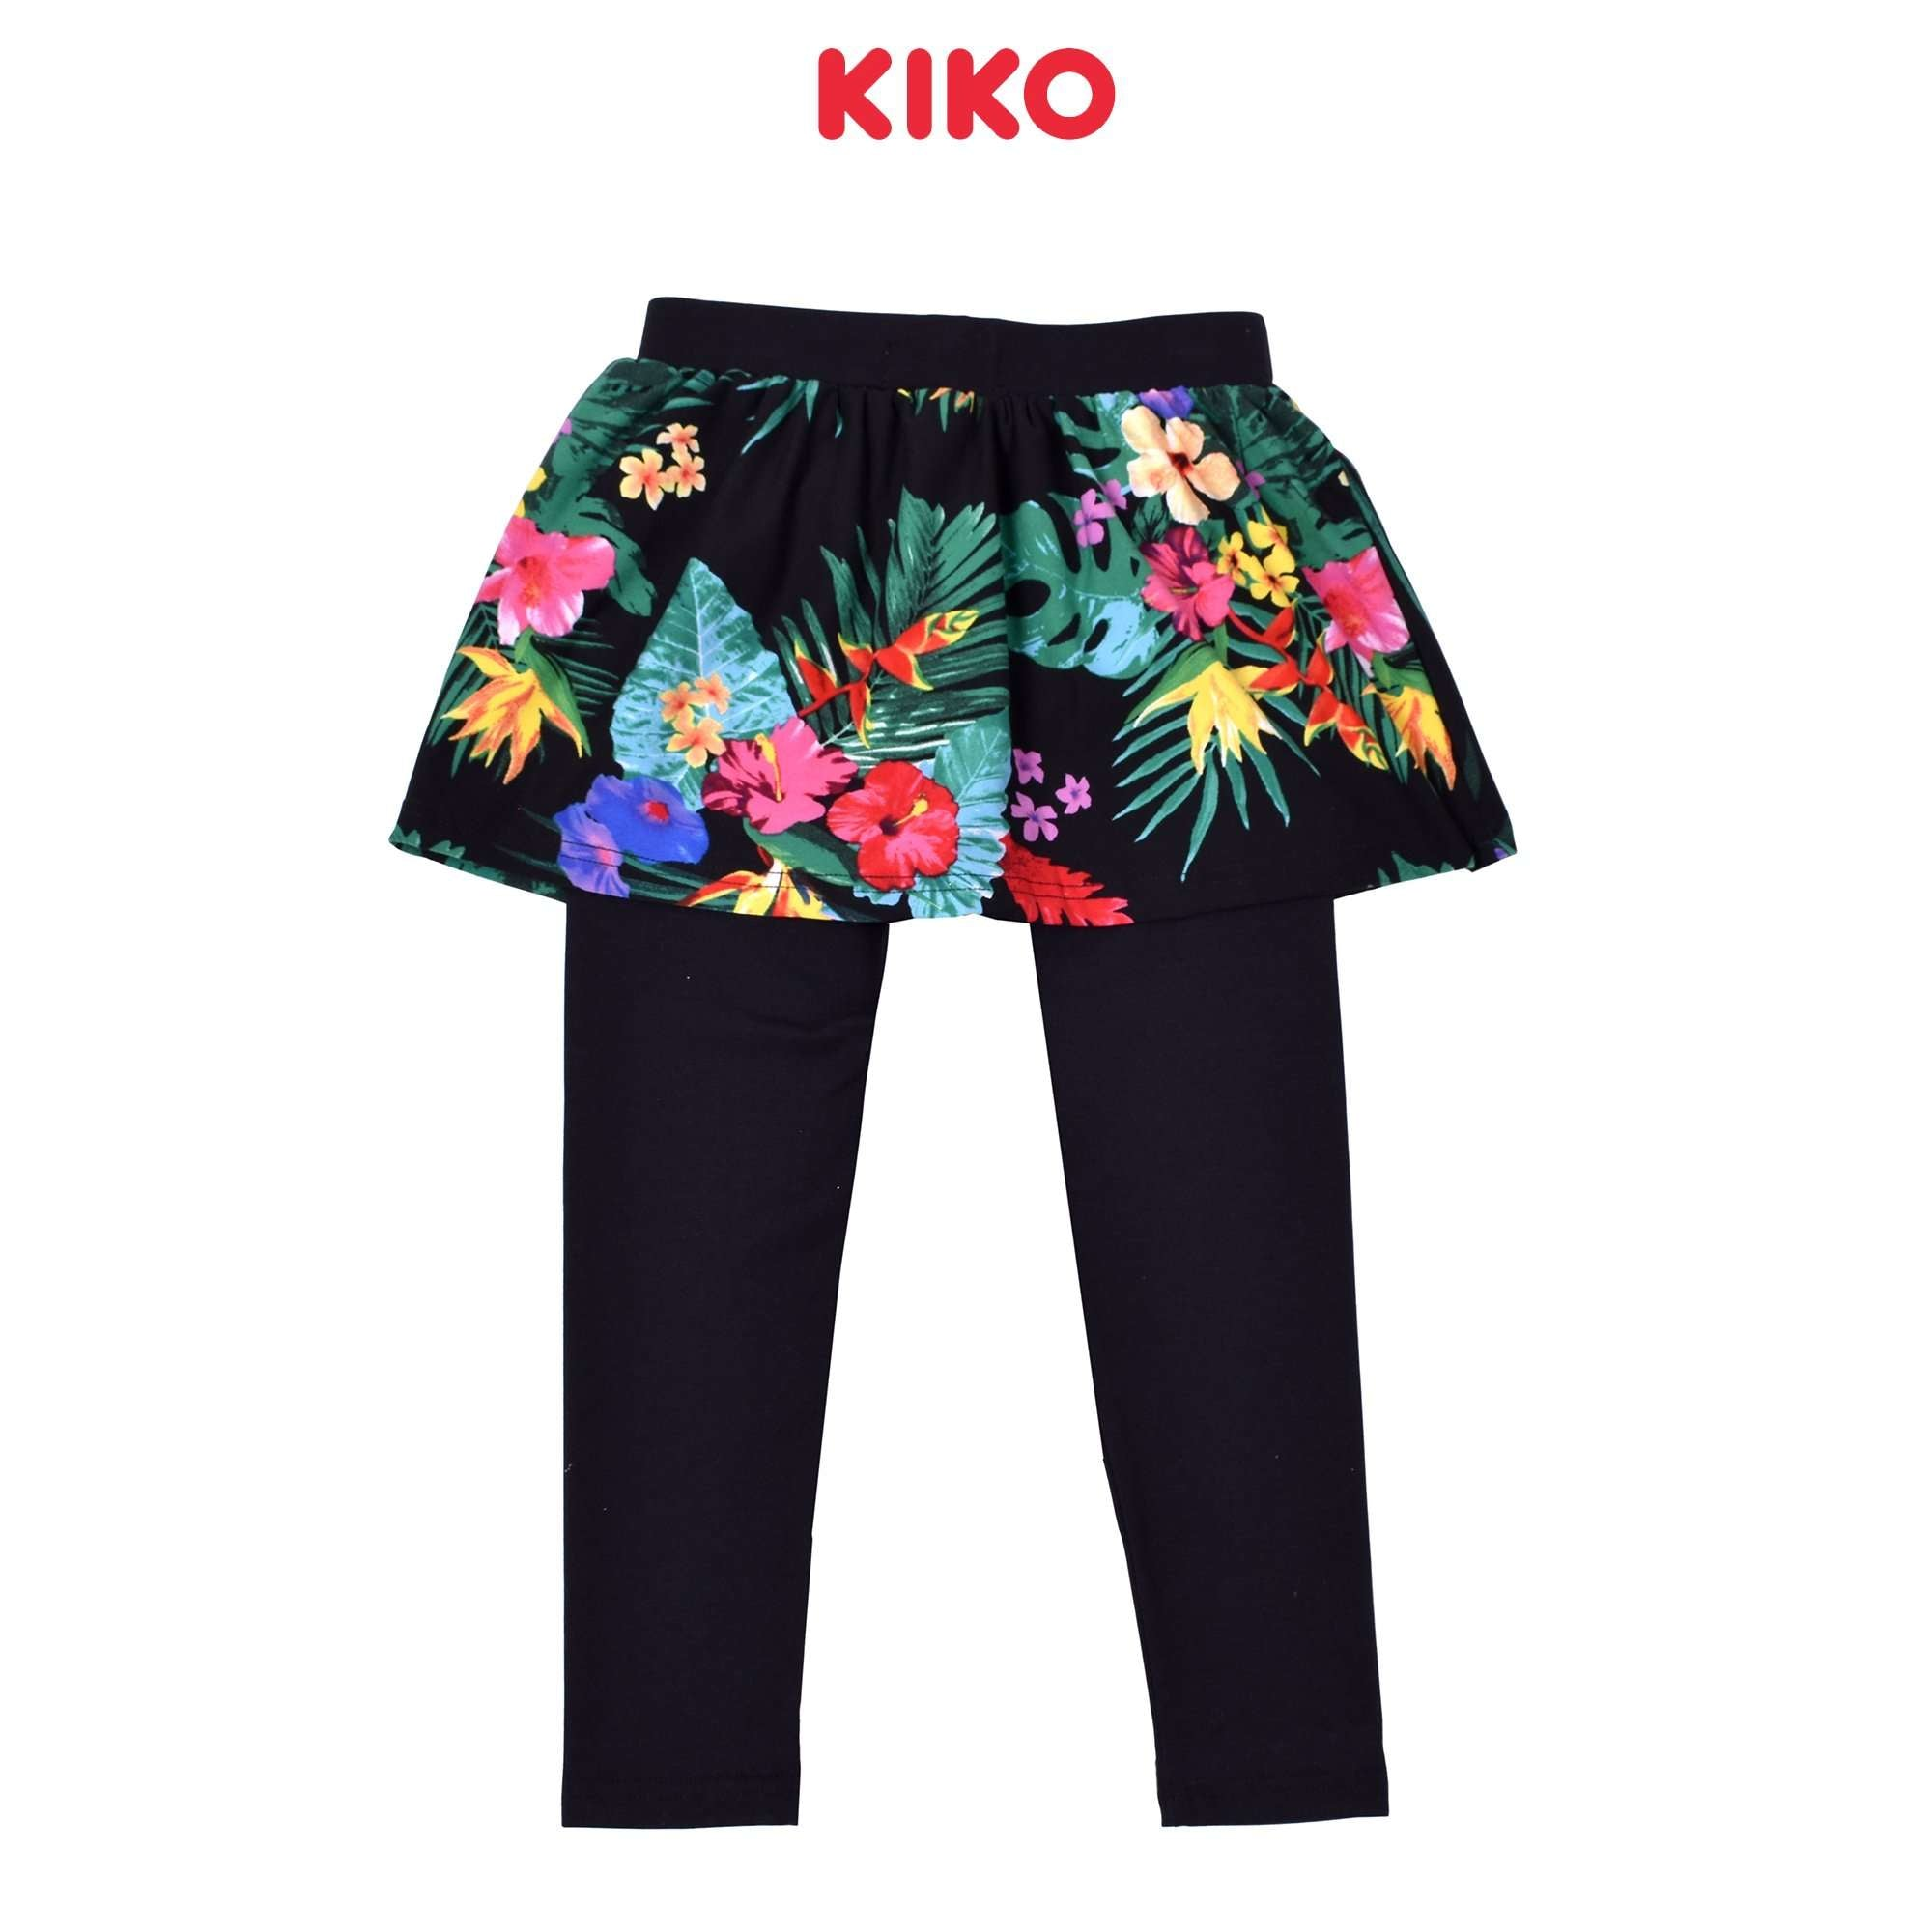 KIKO Girl Skirt Legging Knit- Black 126112-292 : Buy Baby KIKO online at CMG.MY